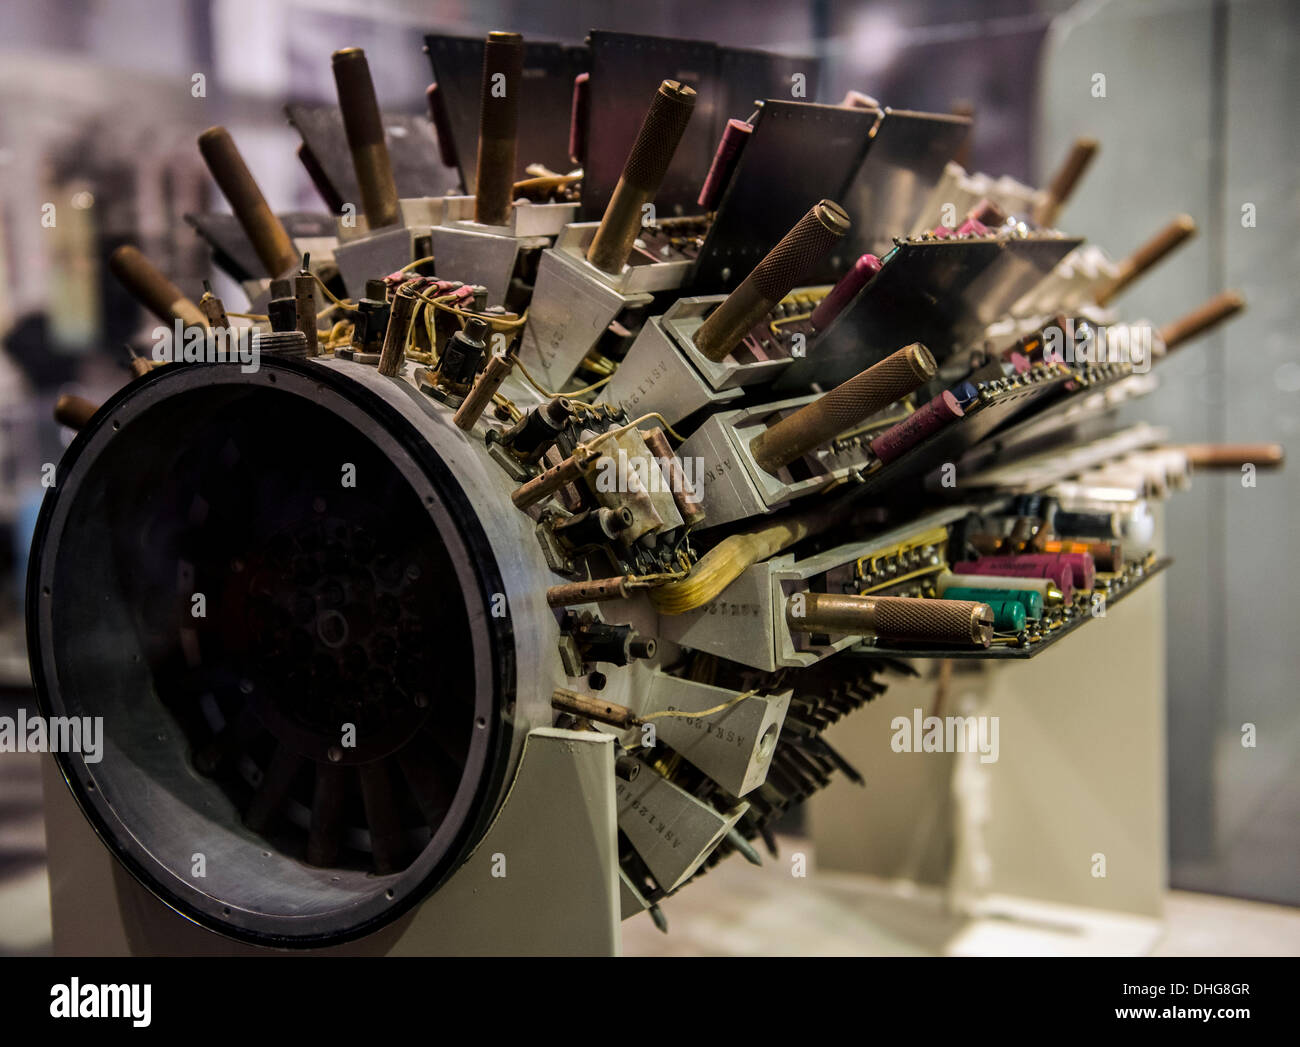 Mountain View, California, USA. 09th Nov, 2013. The circa 1951 UNIVAC I mercury memory tank by Remington Rand on display at the Computer History Museum in Silicon Valley. © Brian Cahn/ZUMAPRESS.com/Alamy Live News - Stock Image